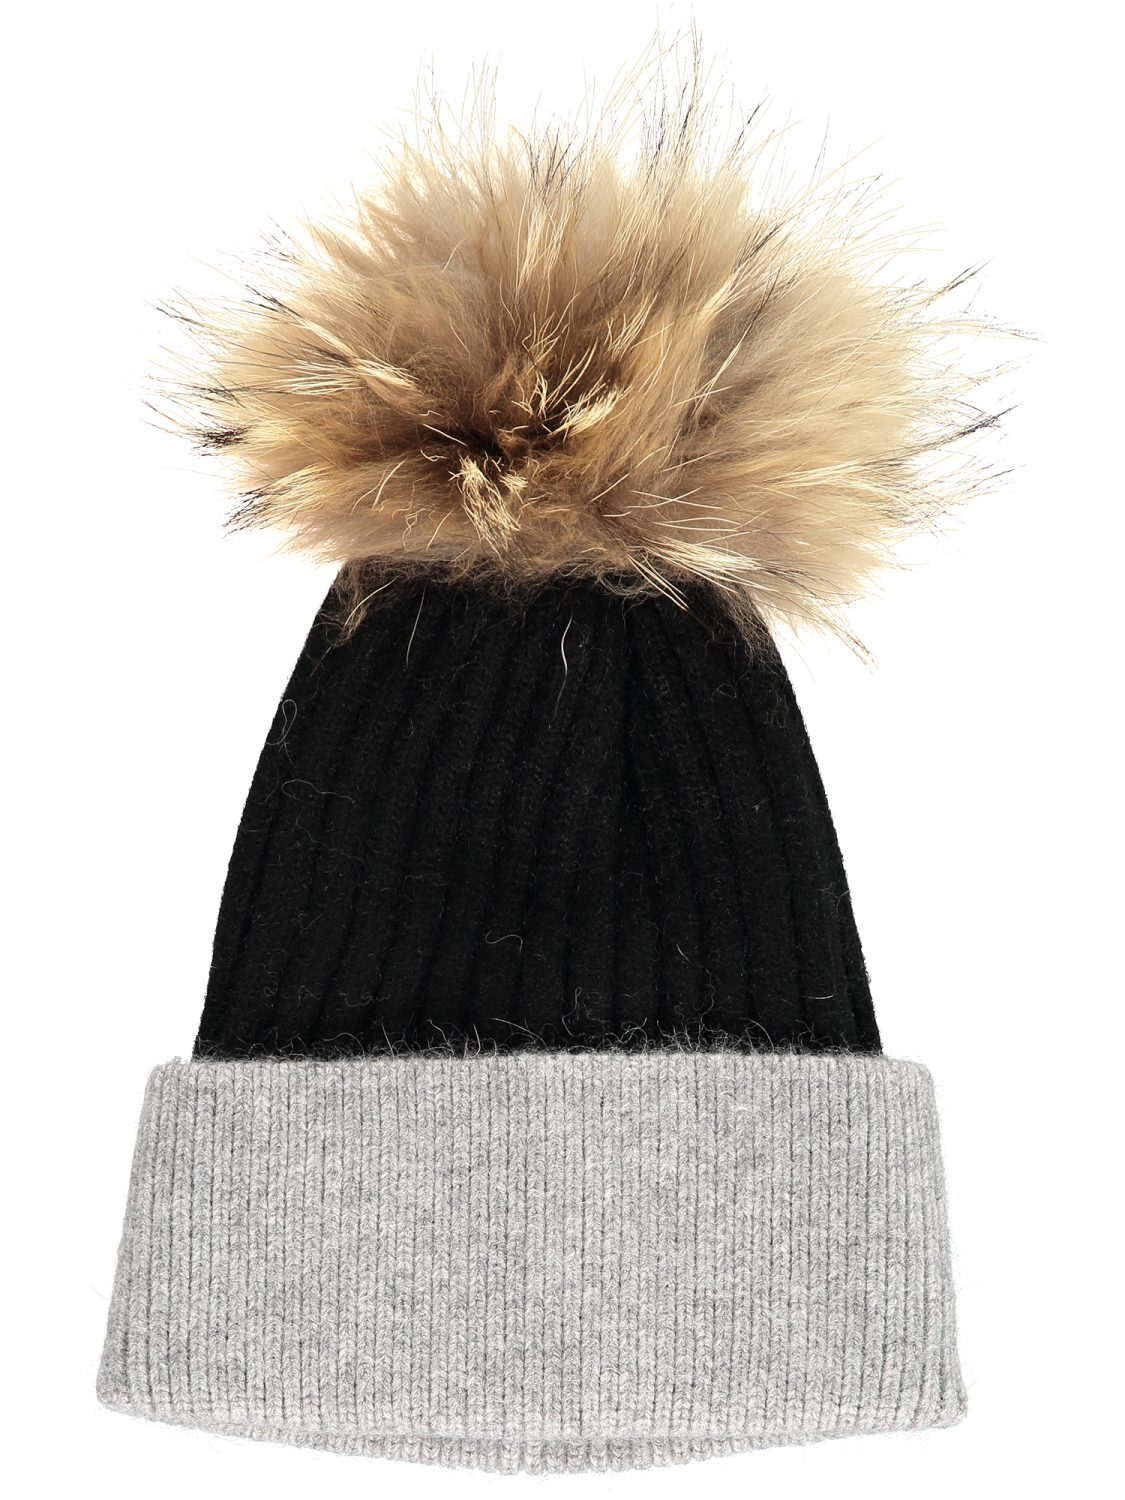 Black & Grey Bobble Hat